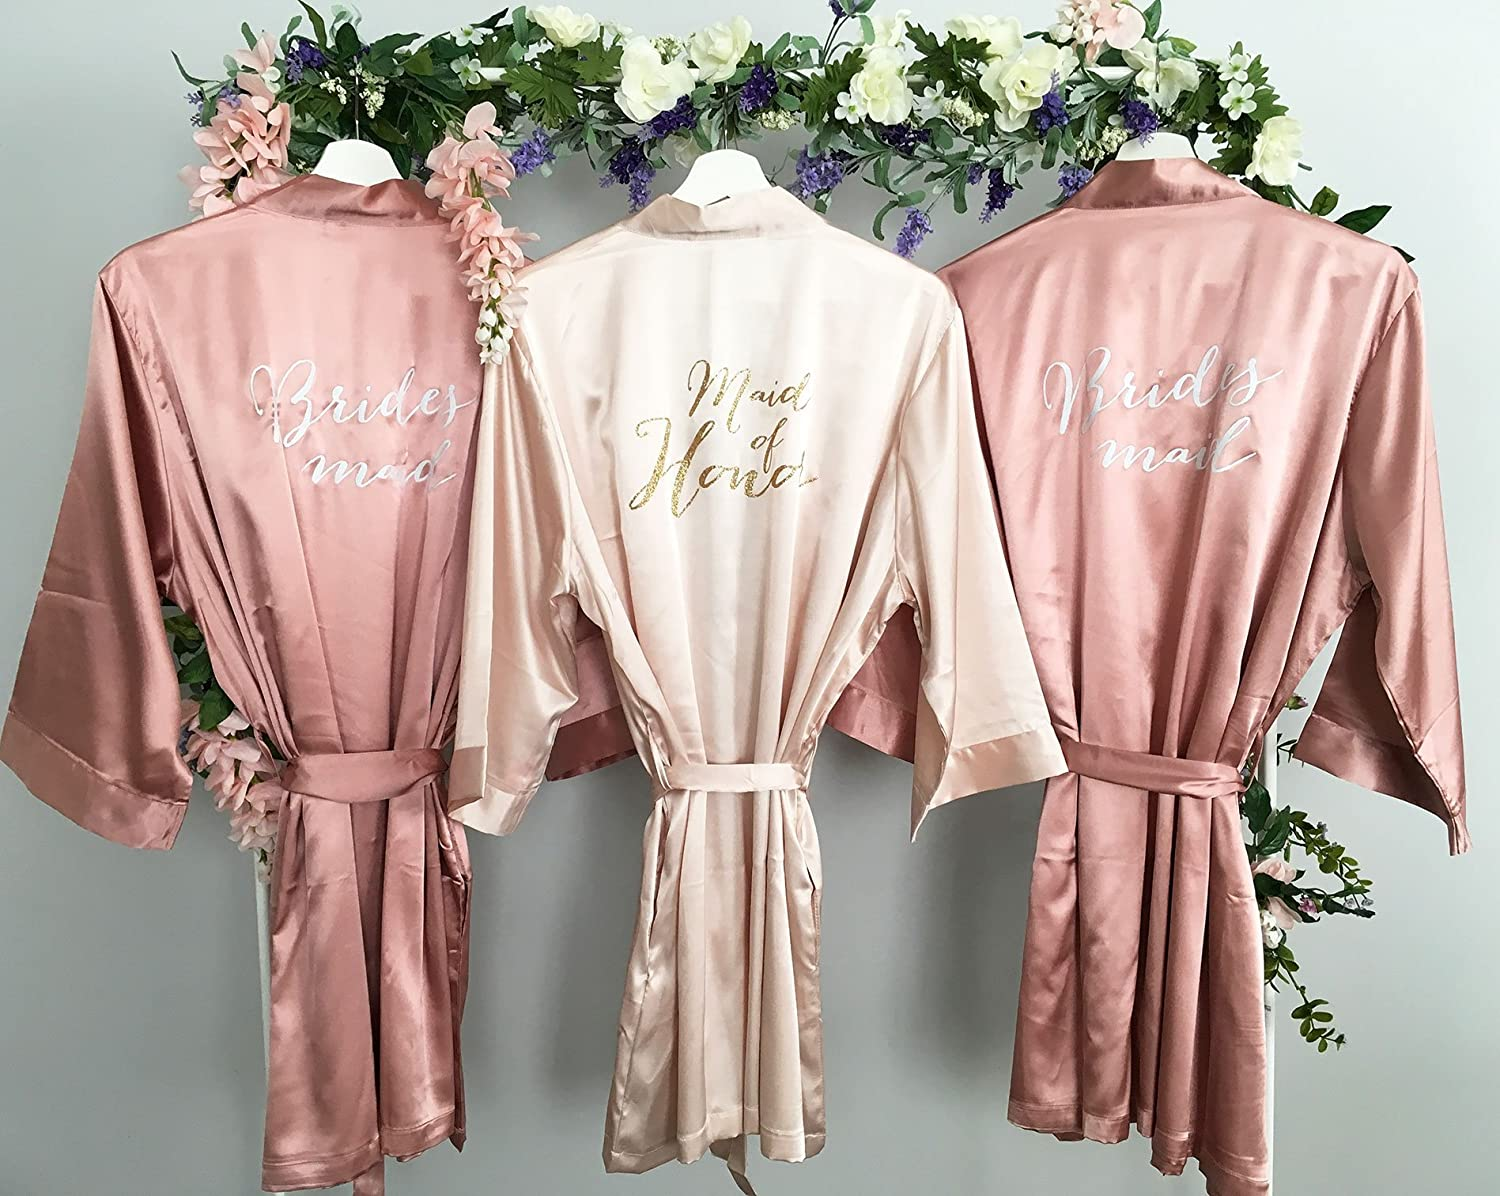 Amazon.com Bridesmaid Robe, Maid of Honor Robe, Set of 3 Satin Robes,  Blush, Rose Gold, Mauve, Dusty Rose, Vintage Pink Wedding, Bridal Party  Robes,